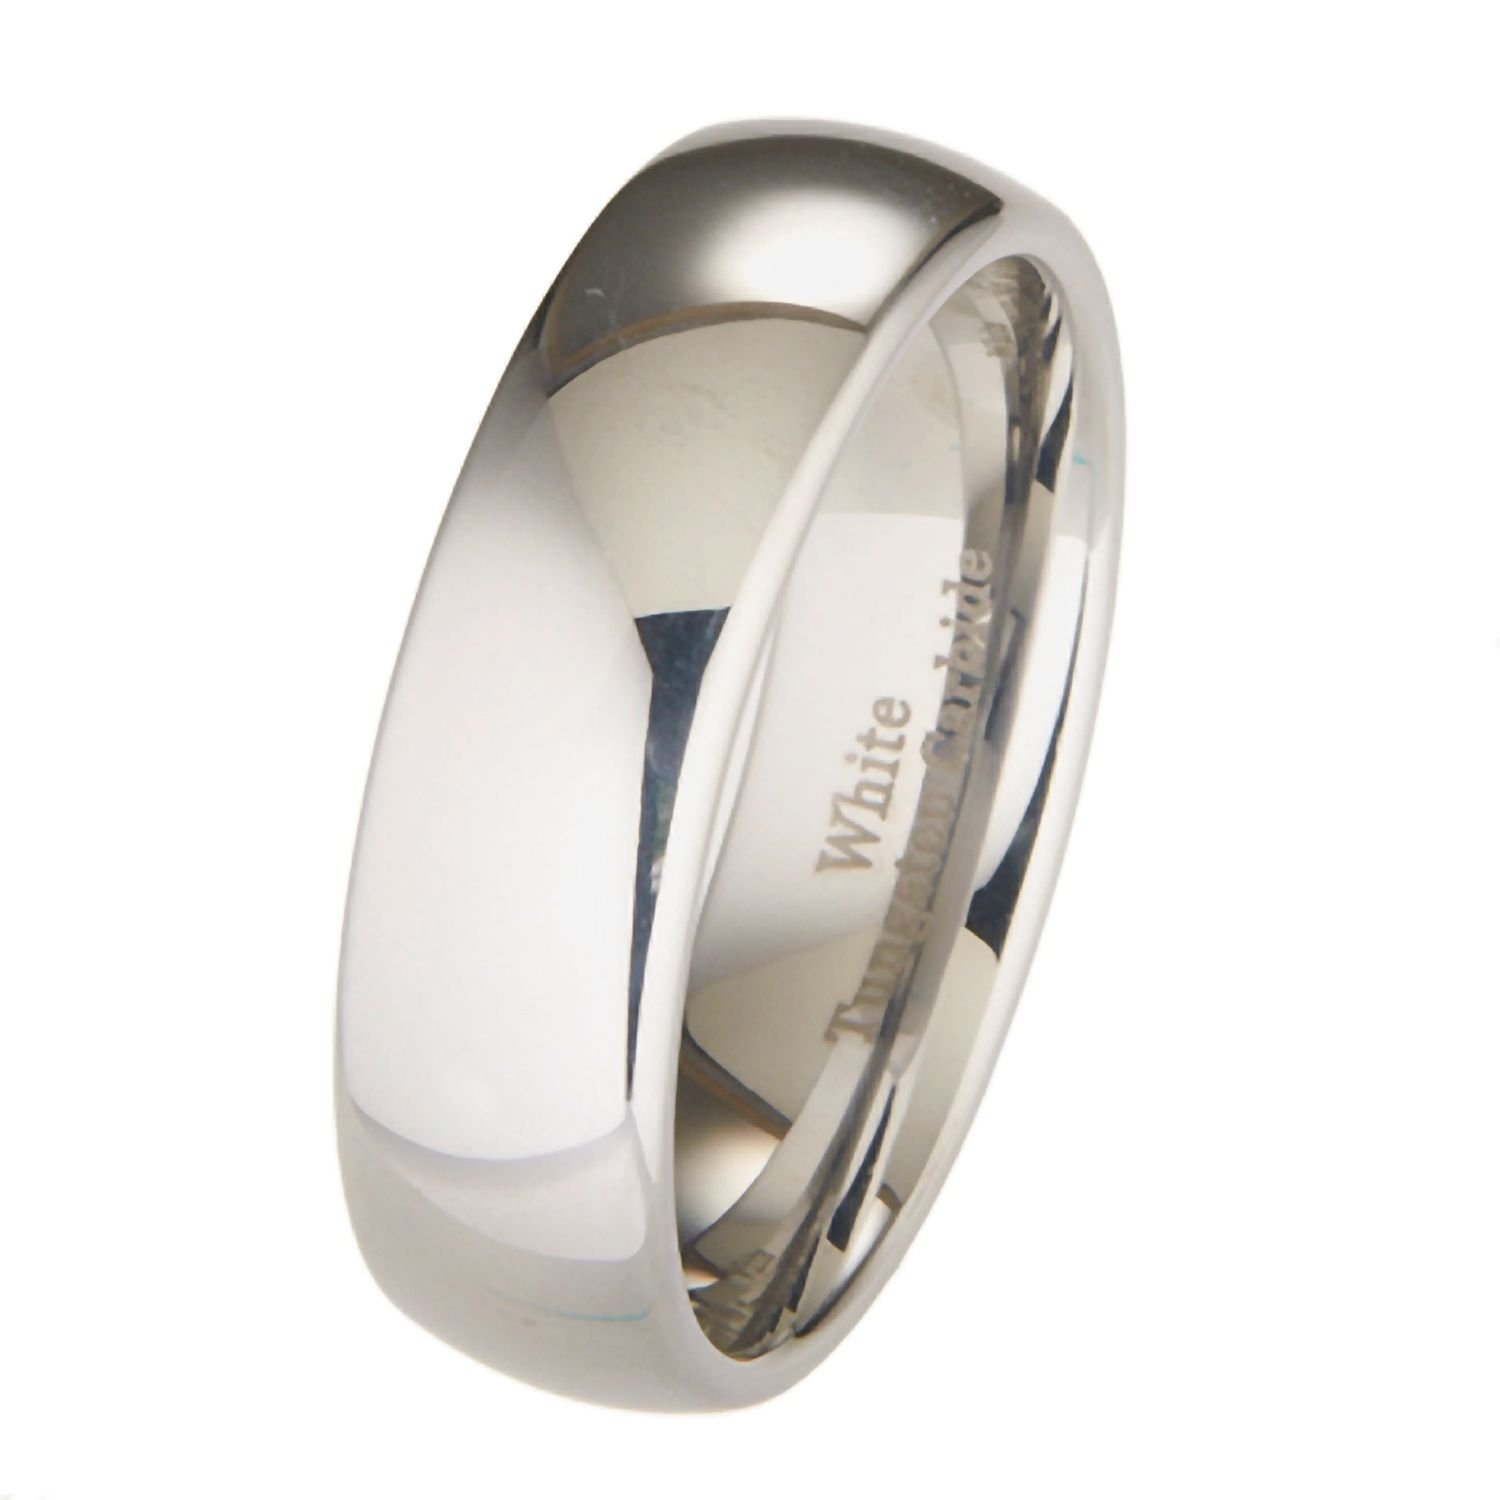 MJ Metals Jewelry Custom Engraved 7mm White Tungsten Carbide Polished Classic Band Ring Size 8.5